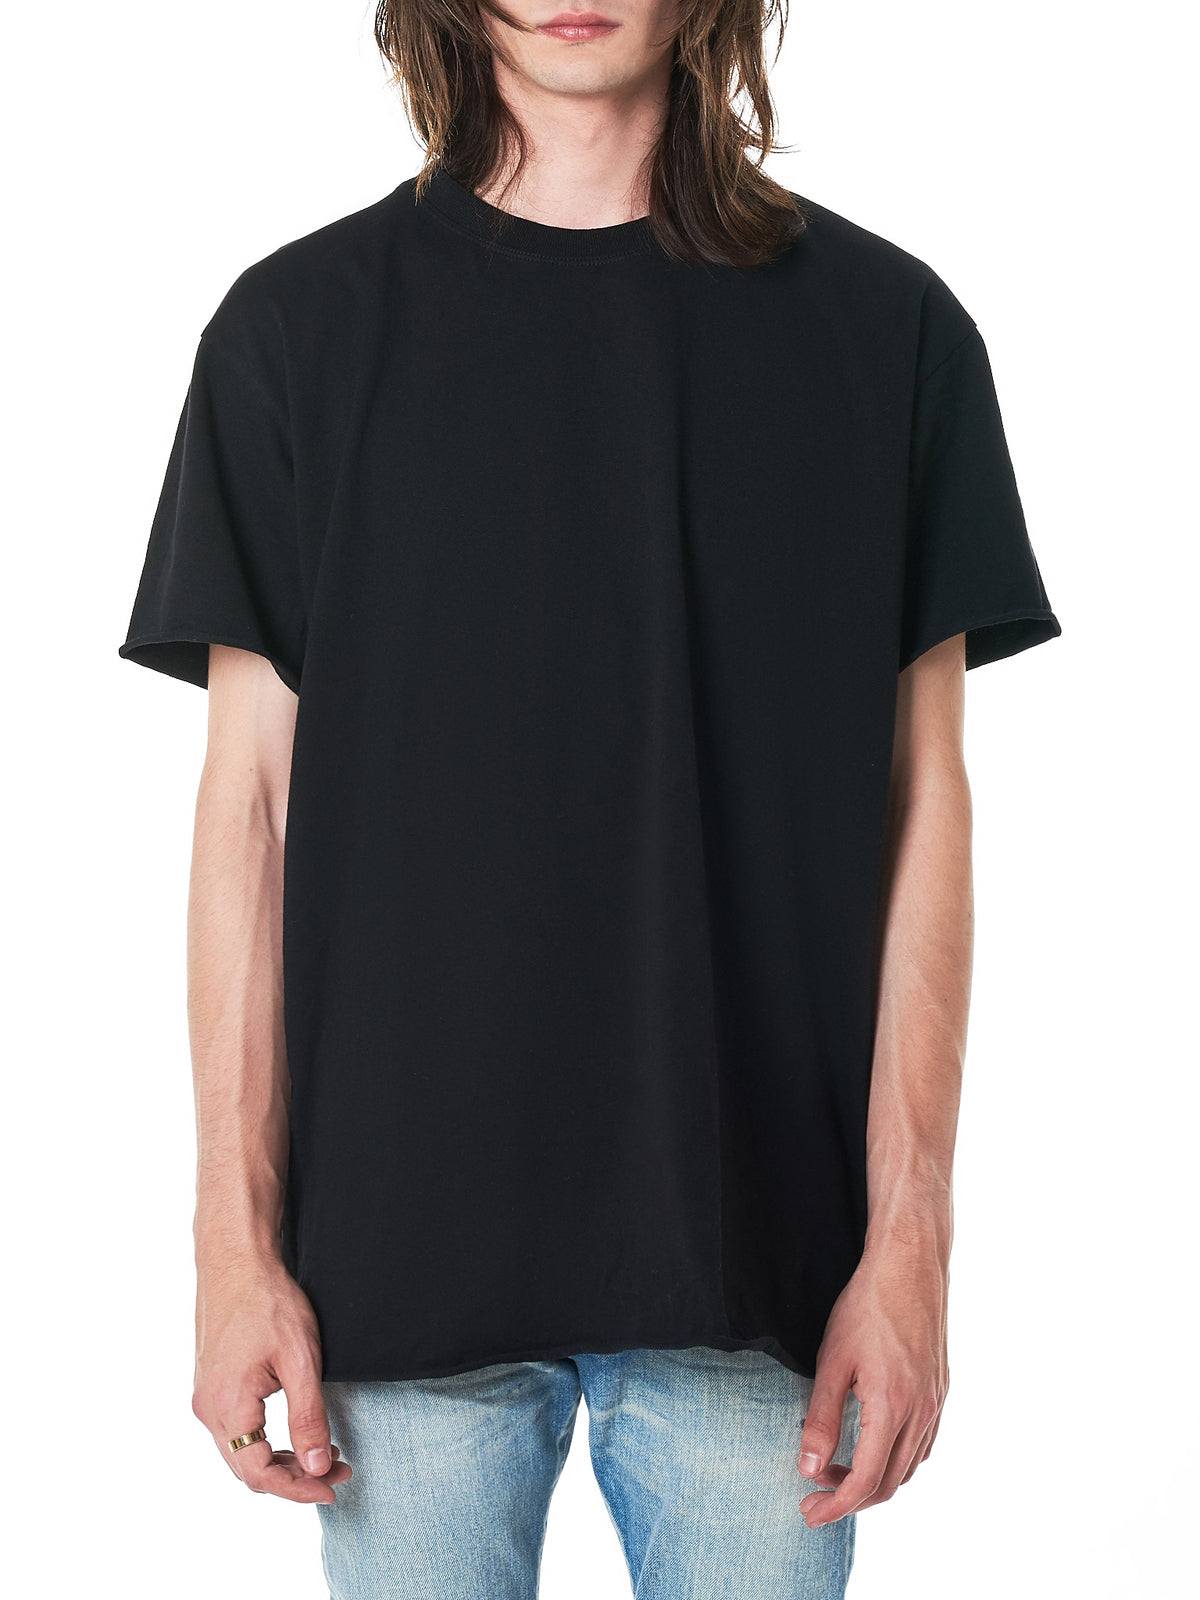 Raw Trim Crewneck Tee (A120M1410A-BLACK)